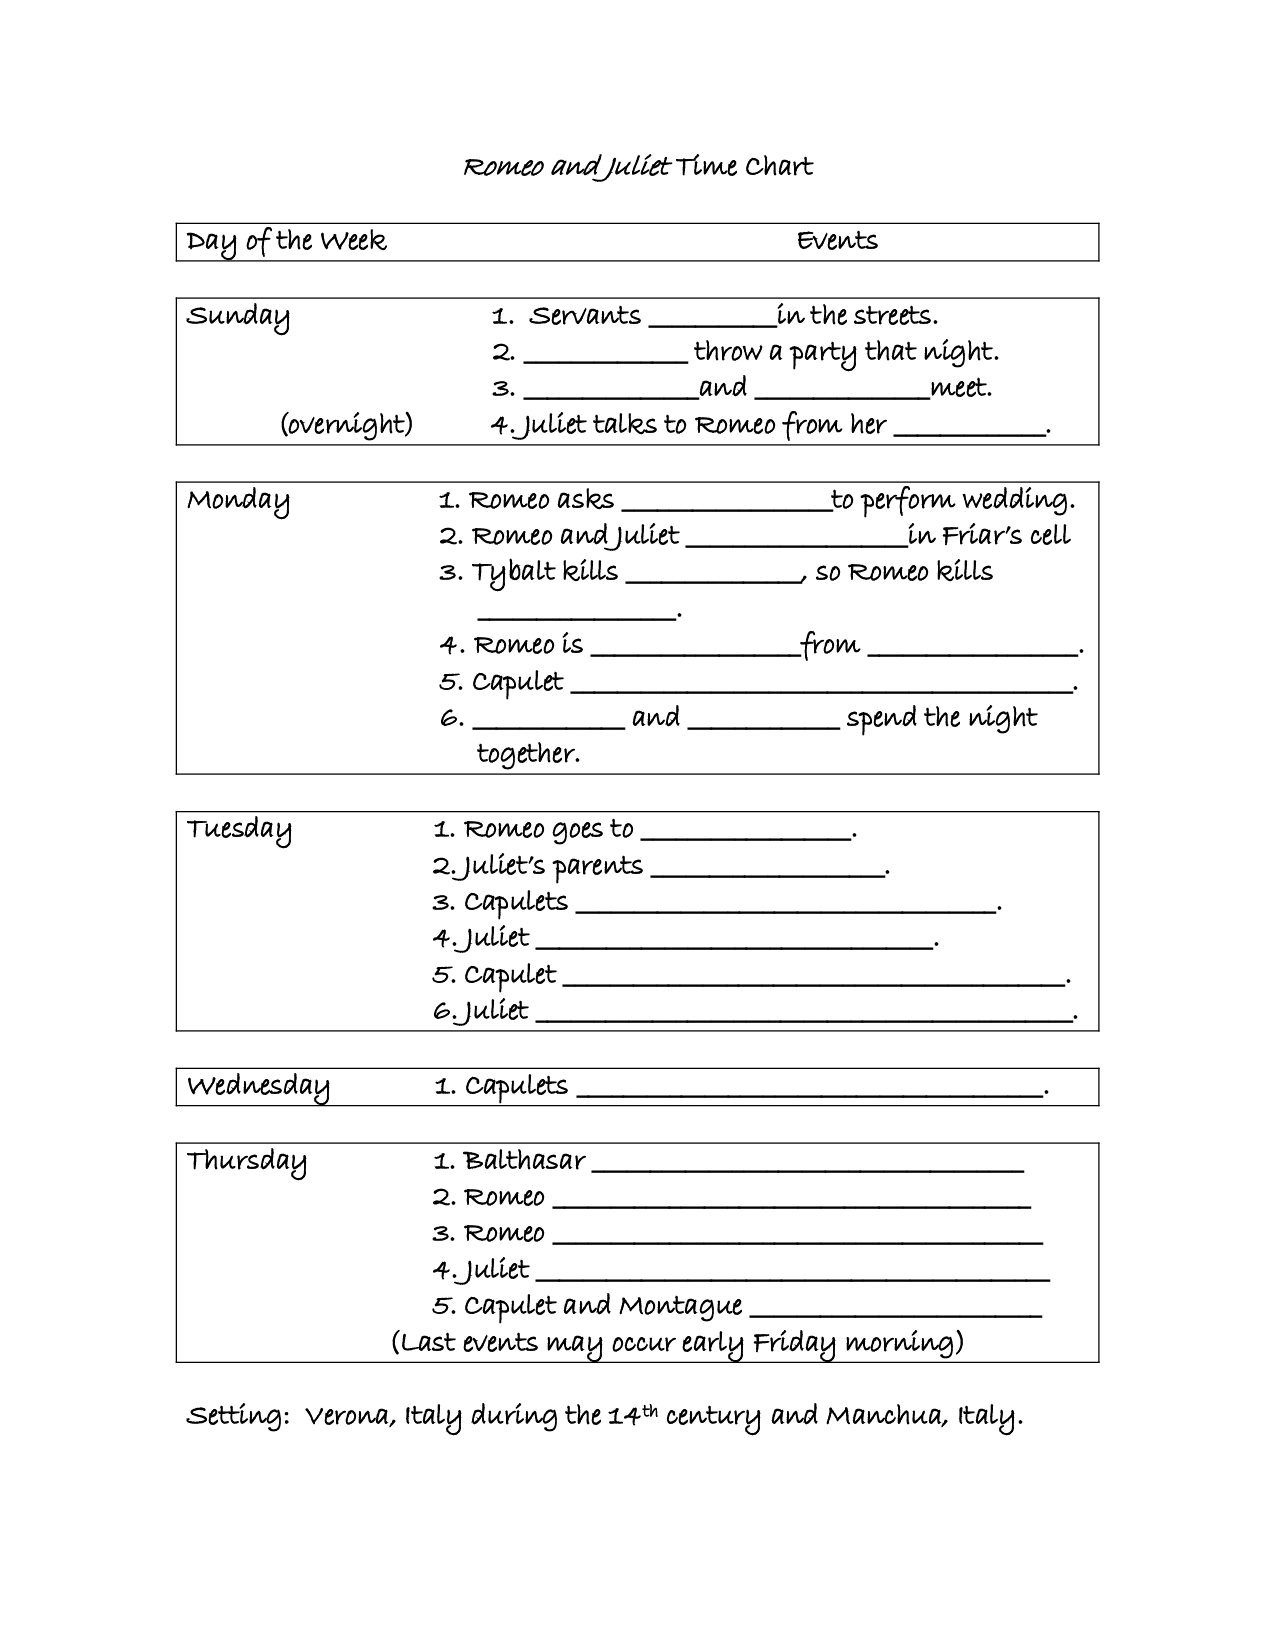 Romeo And Juliet Worksheet Answers Romeo And Juliet Worksheet Romeo And Juliet Sword Fight